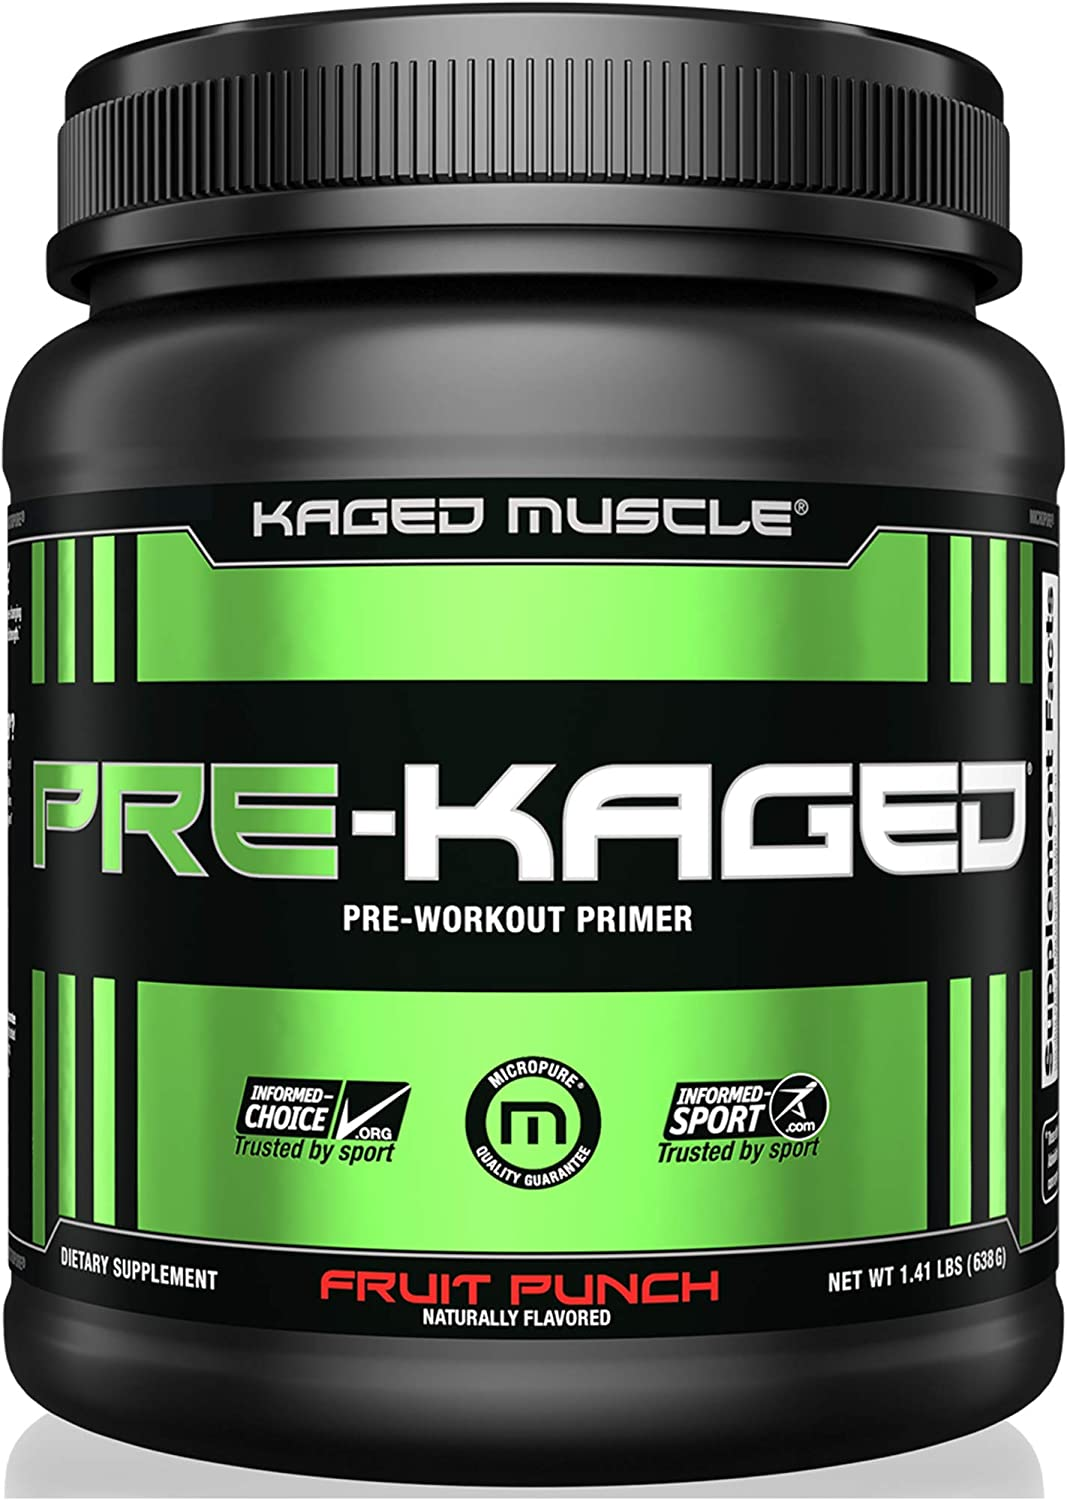 KAGED MUSCLE, PRE-KAGED Pre Workout Powder, L-Citrulline Creatine HCl, Boost Energy, Focus, Workout Intensity, Pre-Workout, Fruit Punch, 20 Servings